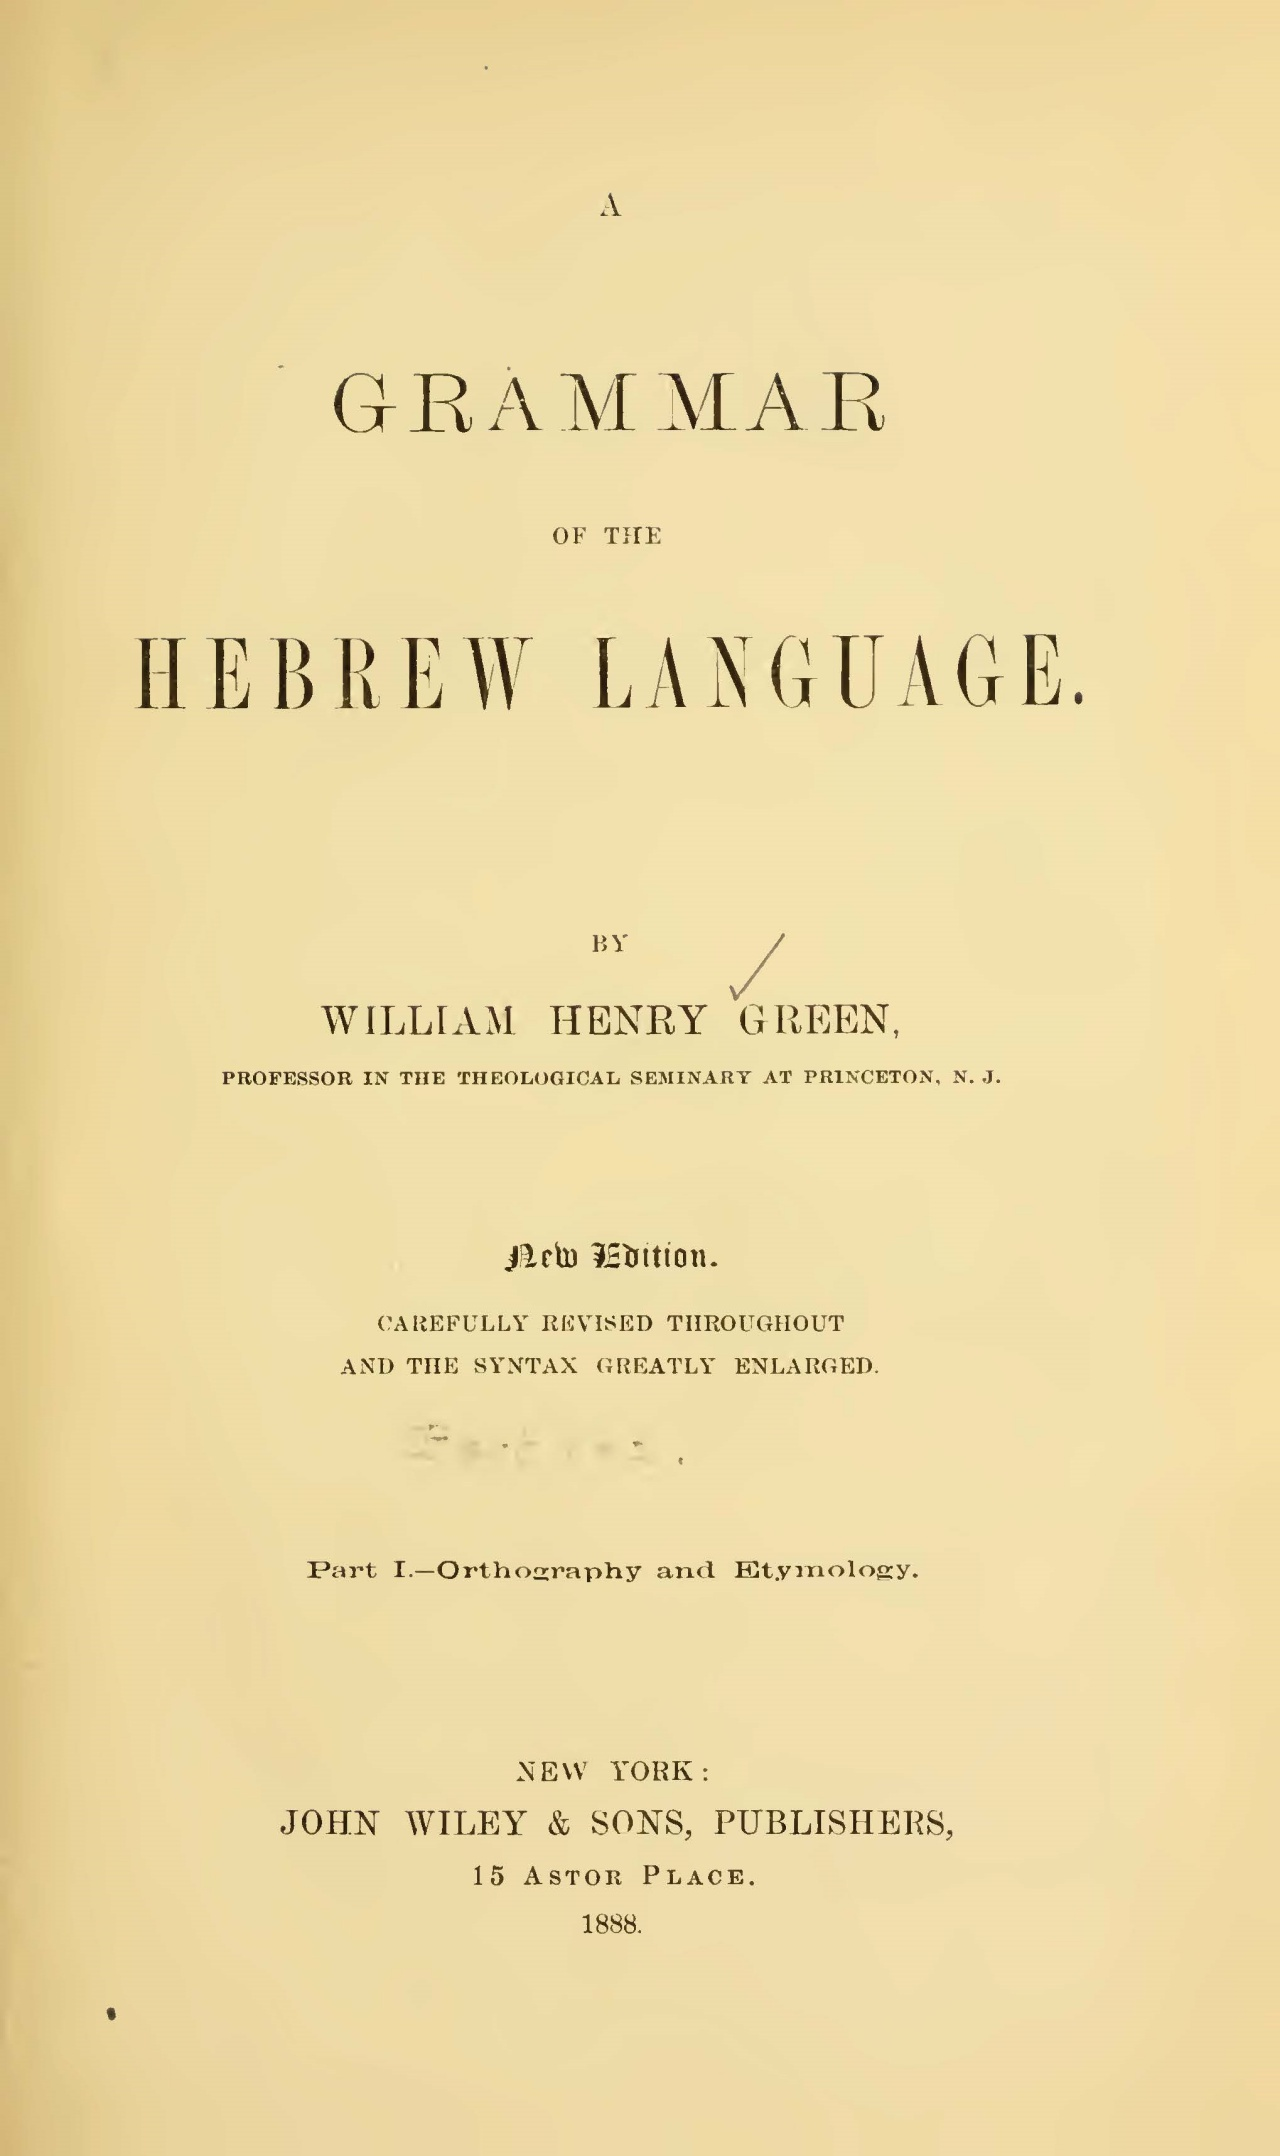 Green, William Henry, A Grammar of the Hebrew Language Title Page.jpg